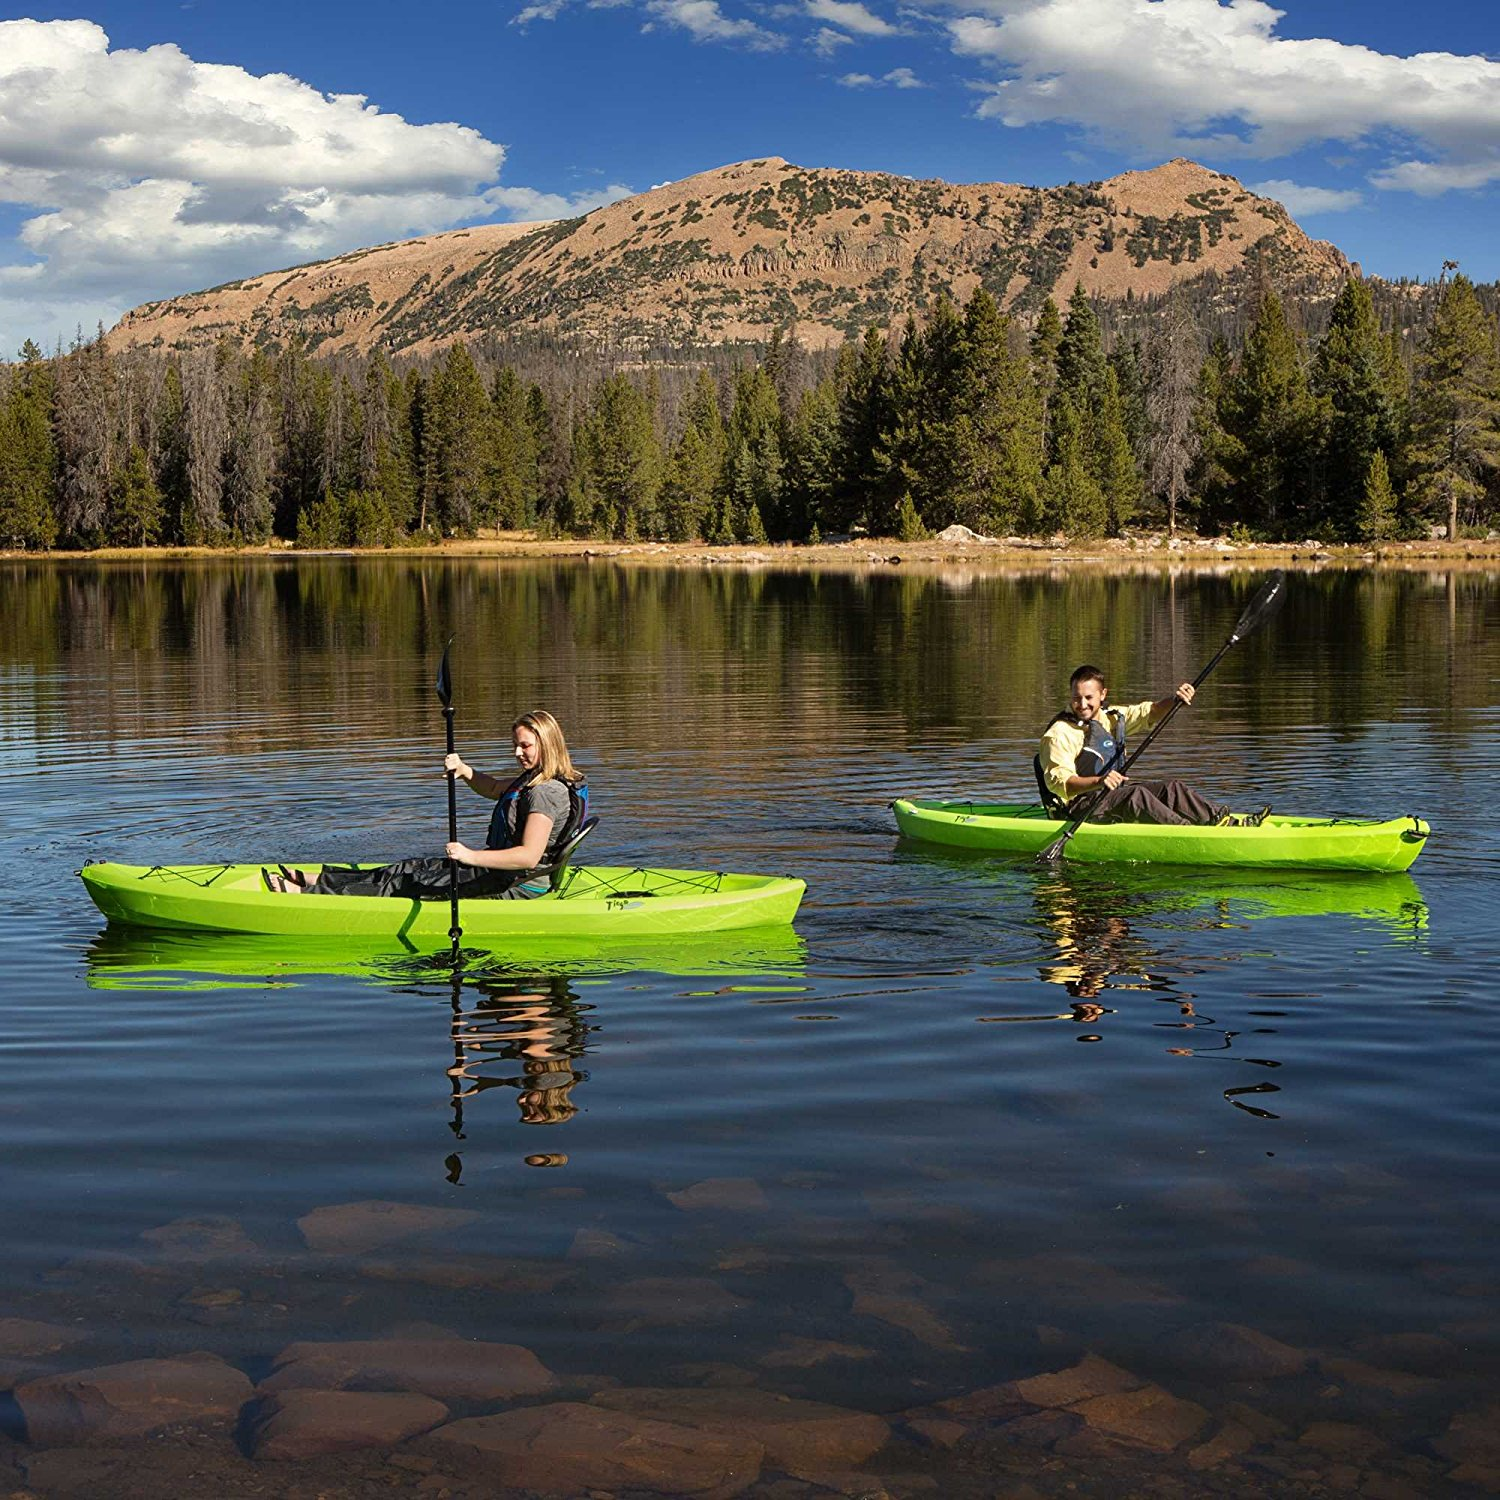 Best Fishing Kayak Under $400